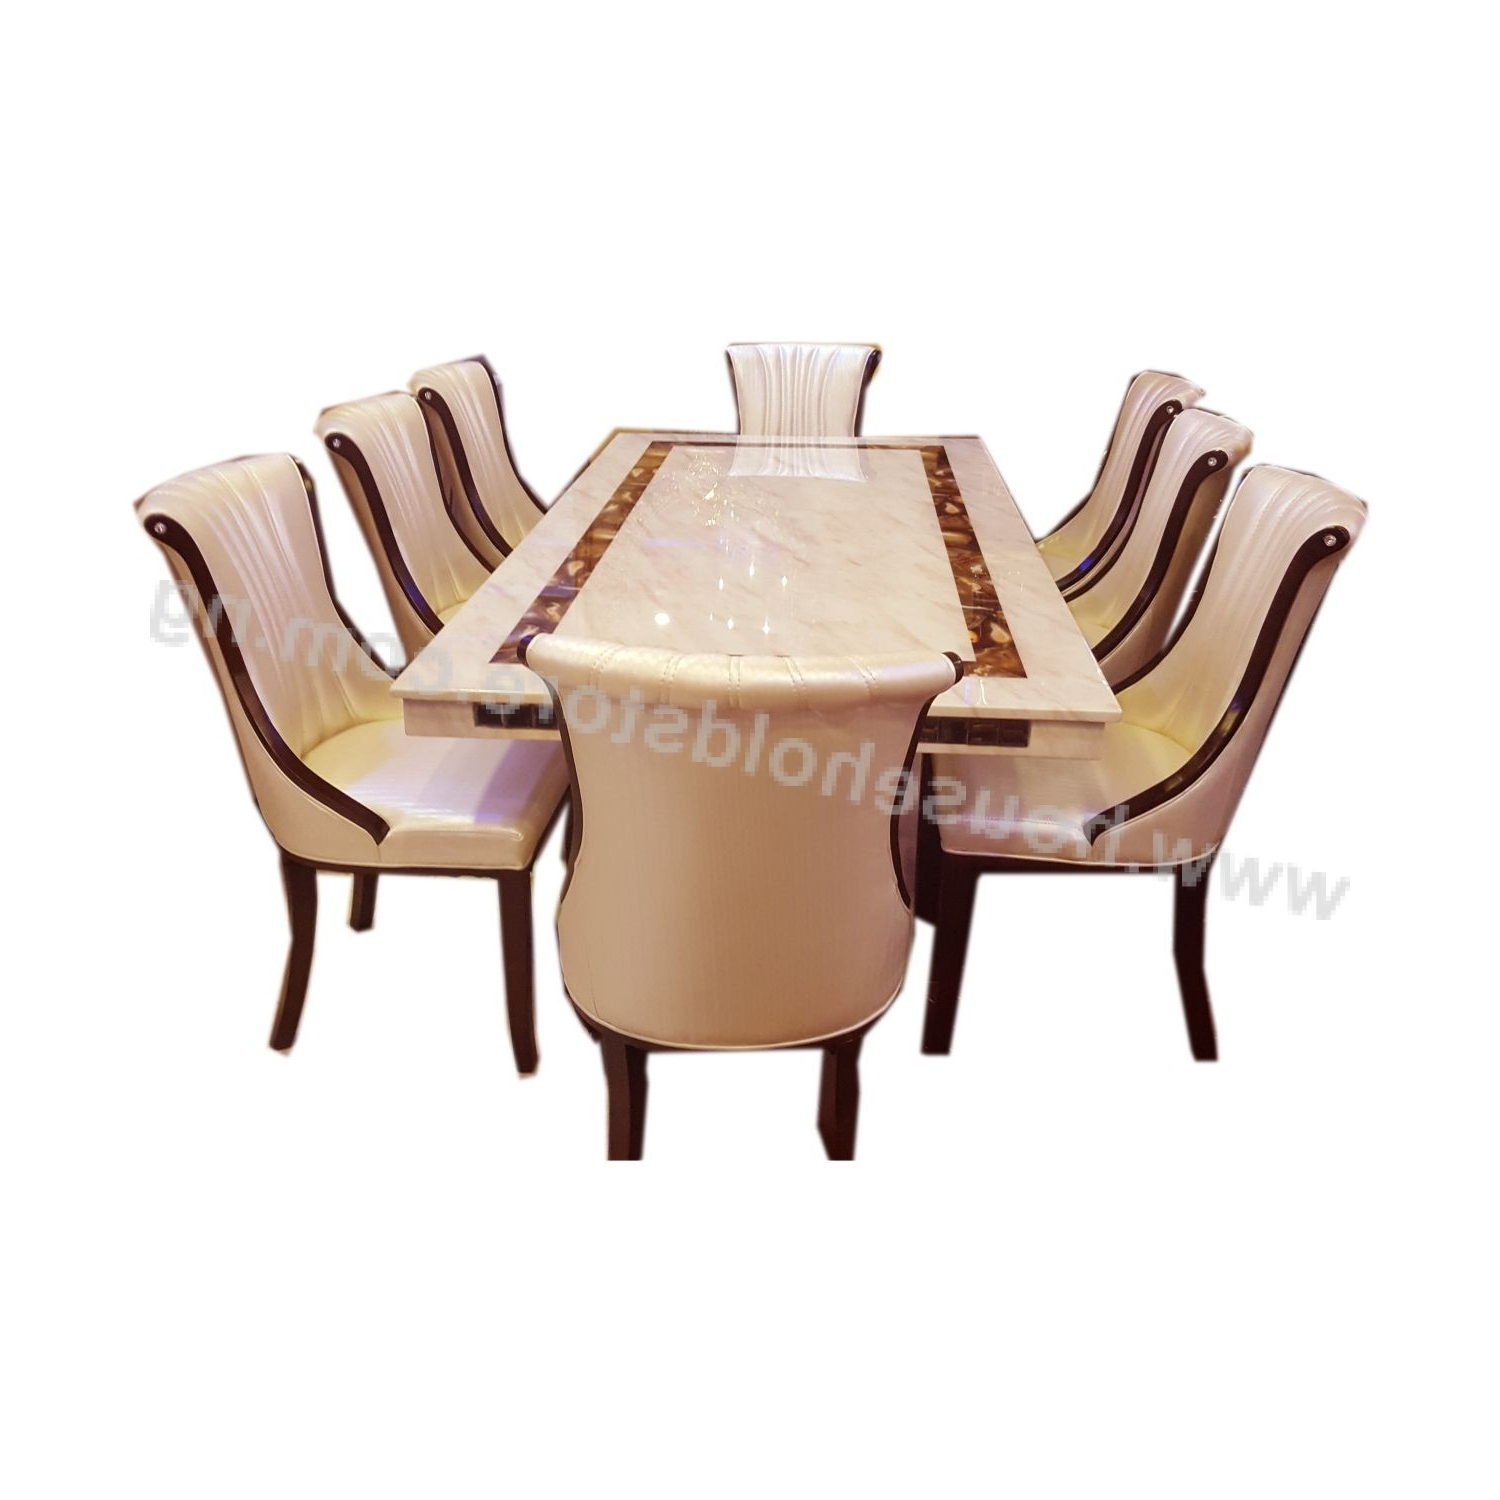 Household Store: Online Shopping In Most Popular Marble Dining Tables Sets (Gallery 24 of 25)